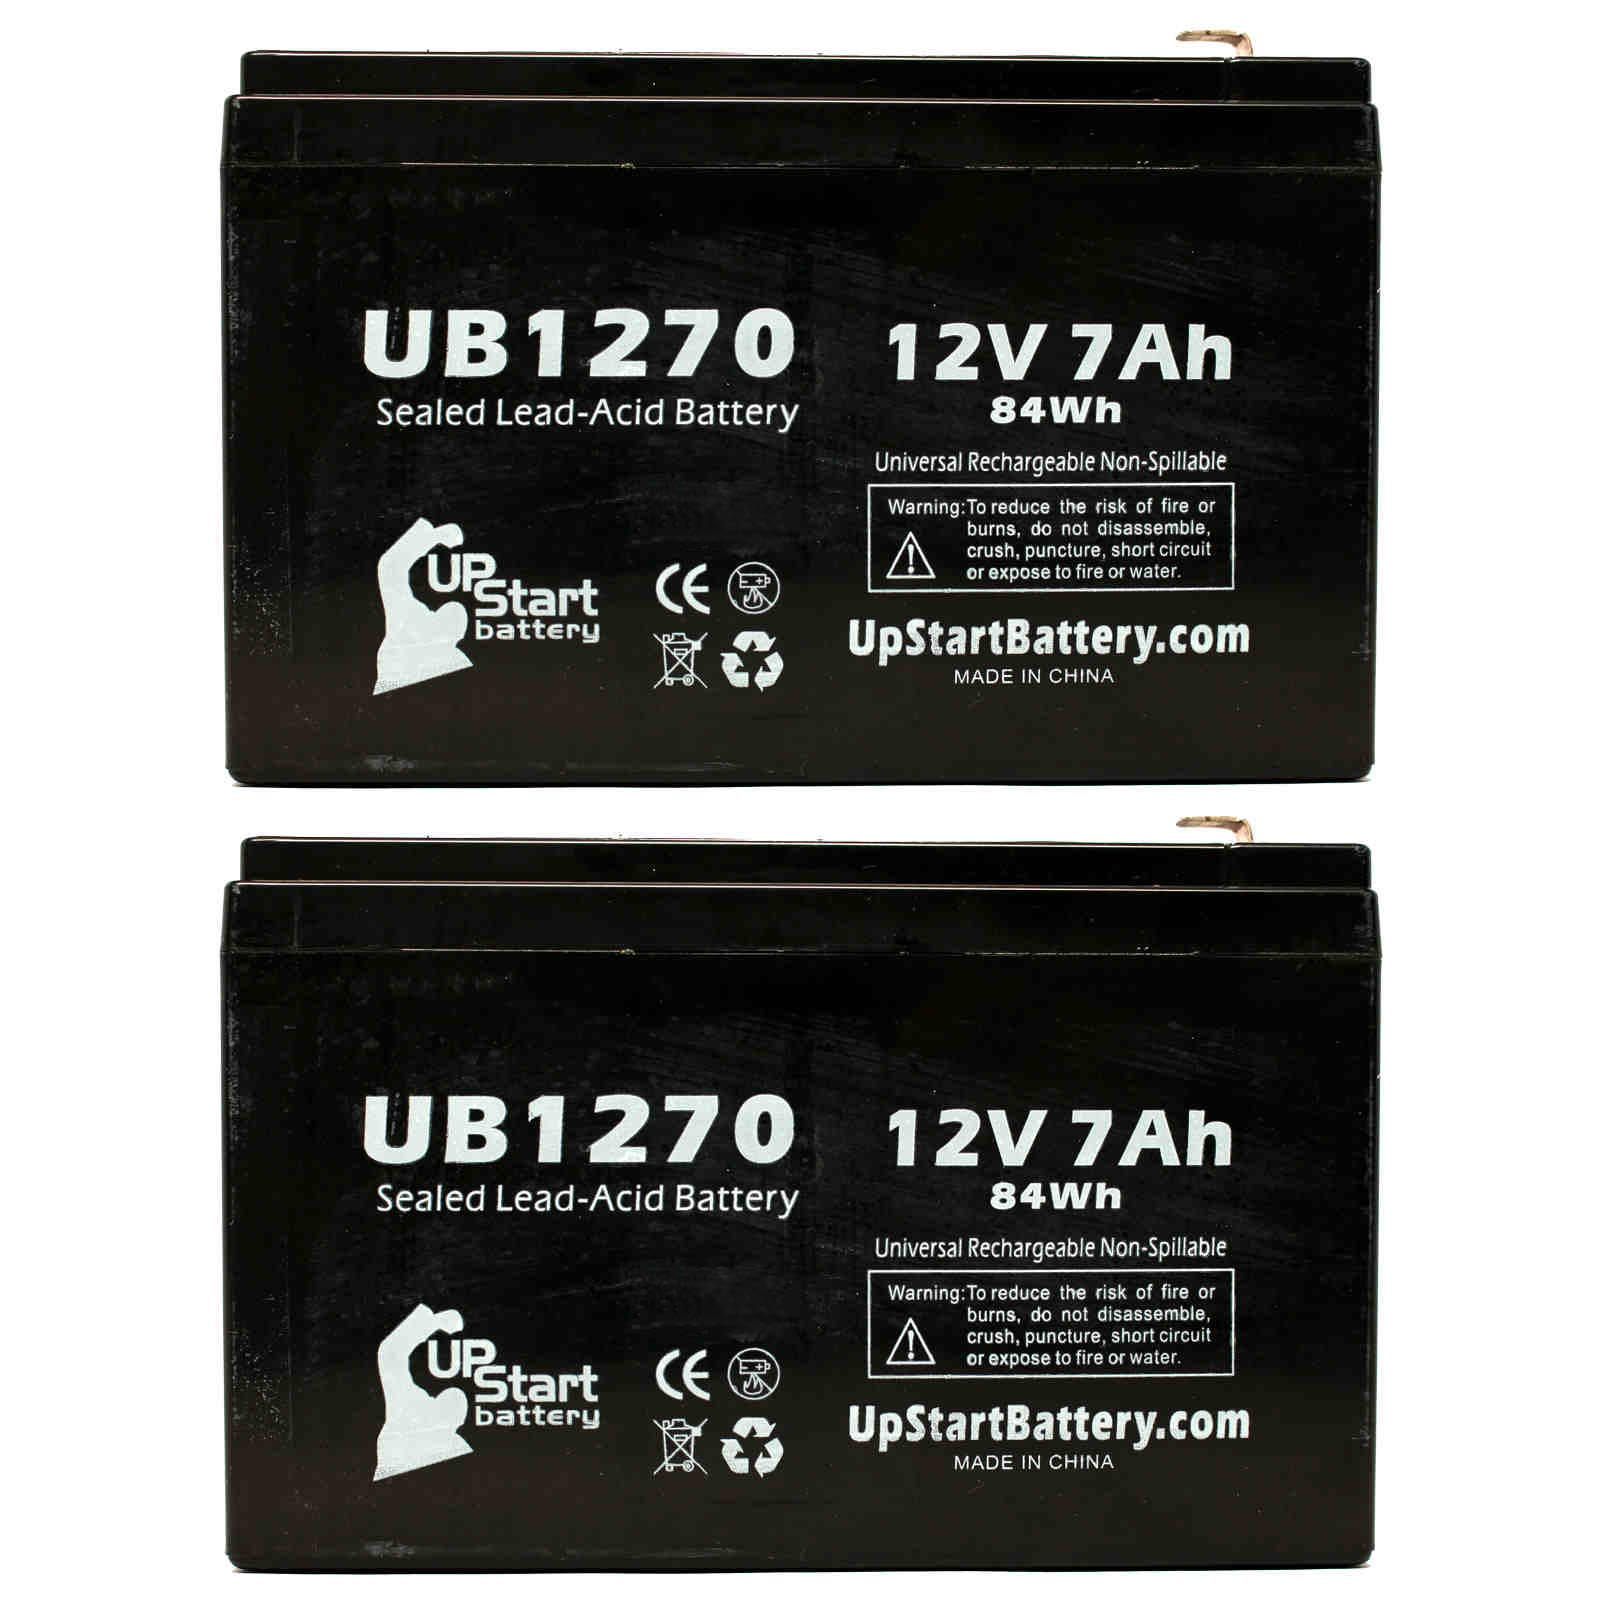 2x Pack - Laerdal 95 HEART AID Battery Replacement -  UB1270 Universal Sealed Lead Acid Battery (12V, 7Ah, 7000mAh, F1 Terminal, AGM, SLA) - Includes 4 F1 to F2 Terminal Adapters